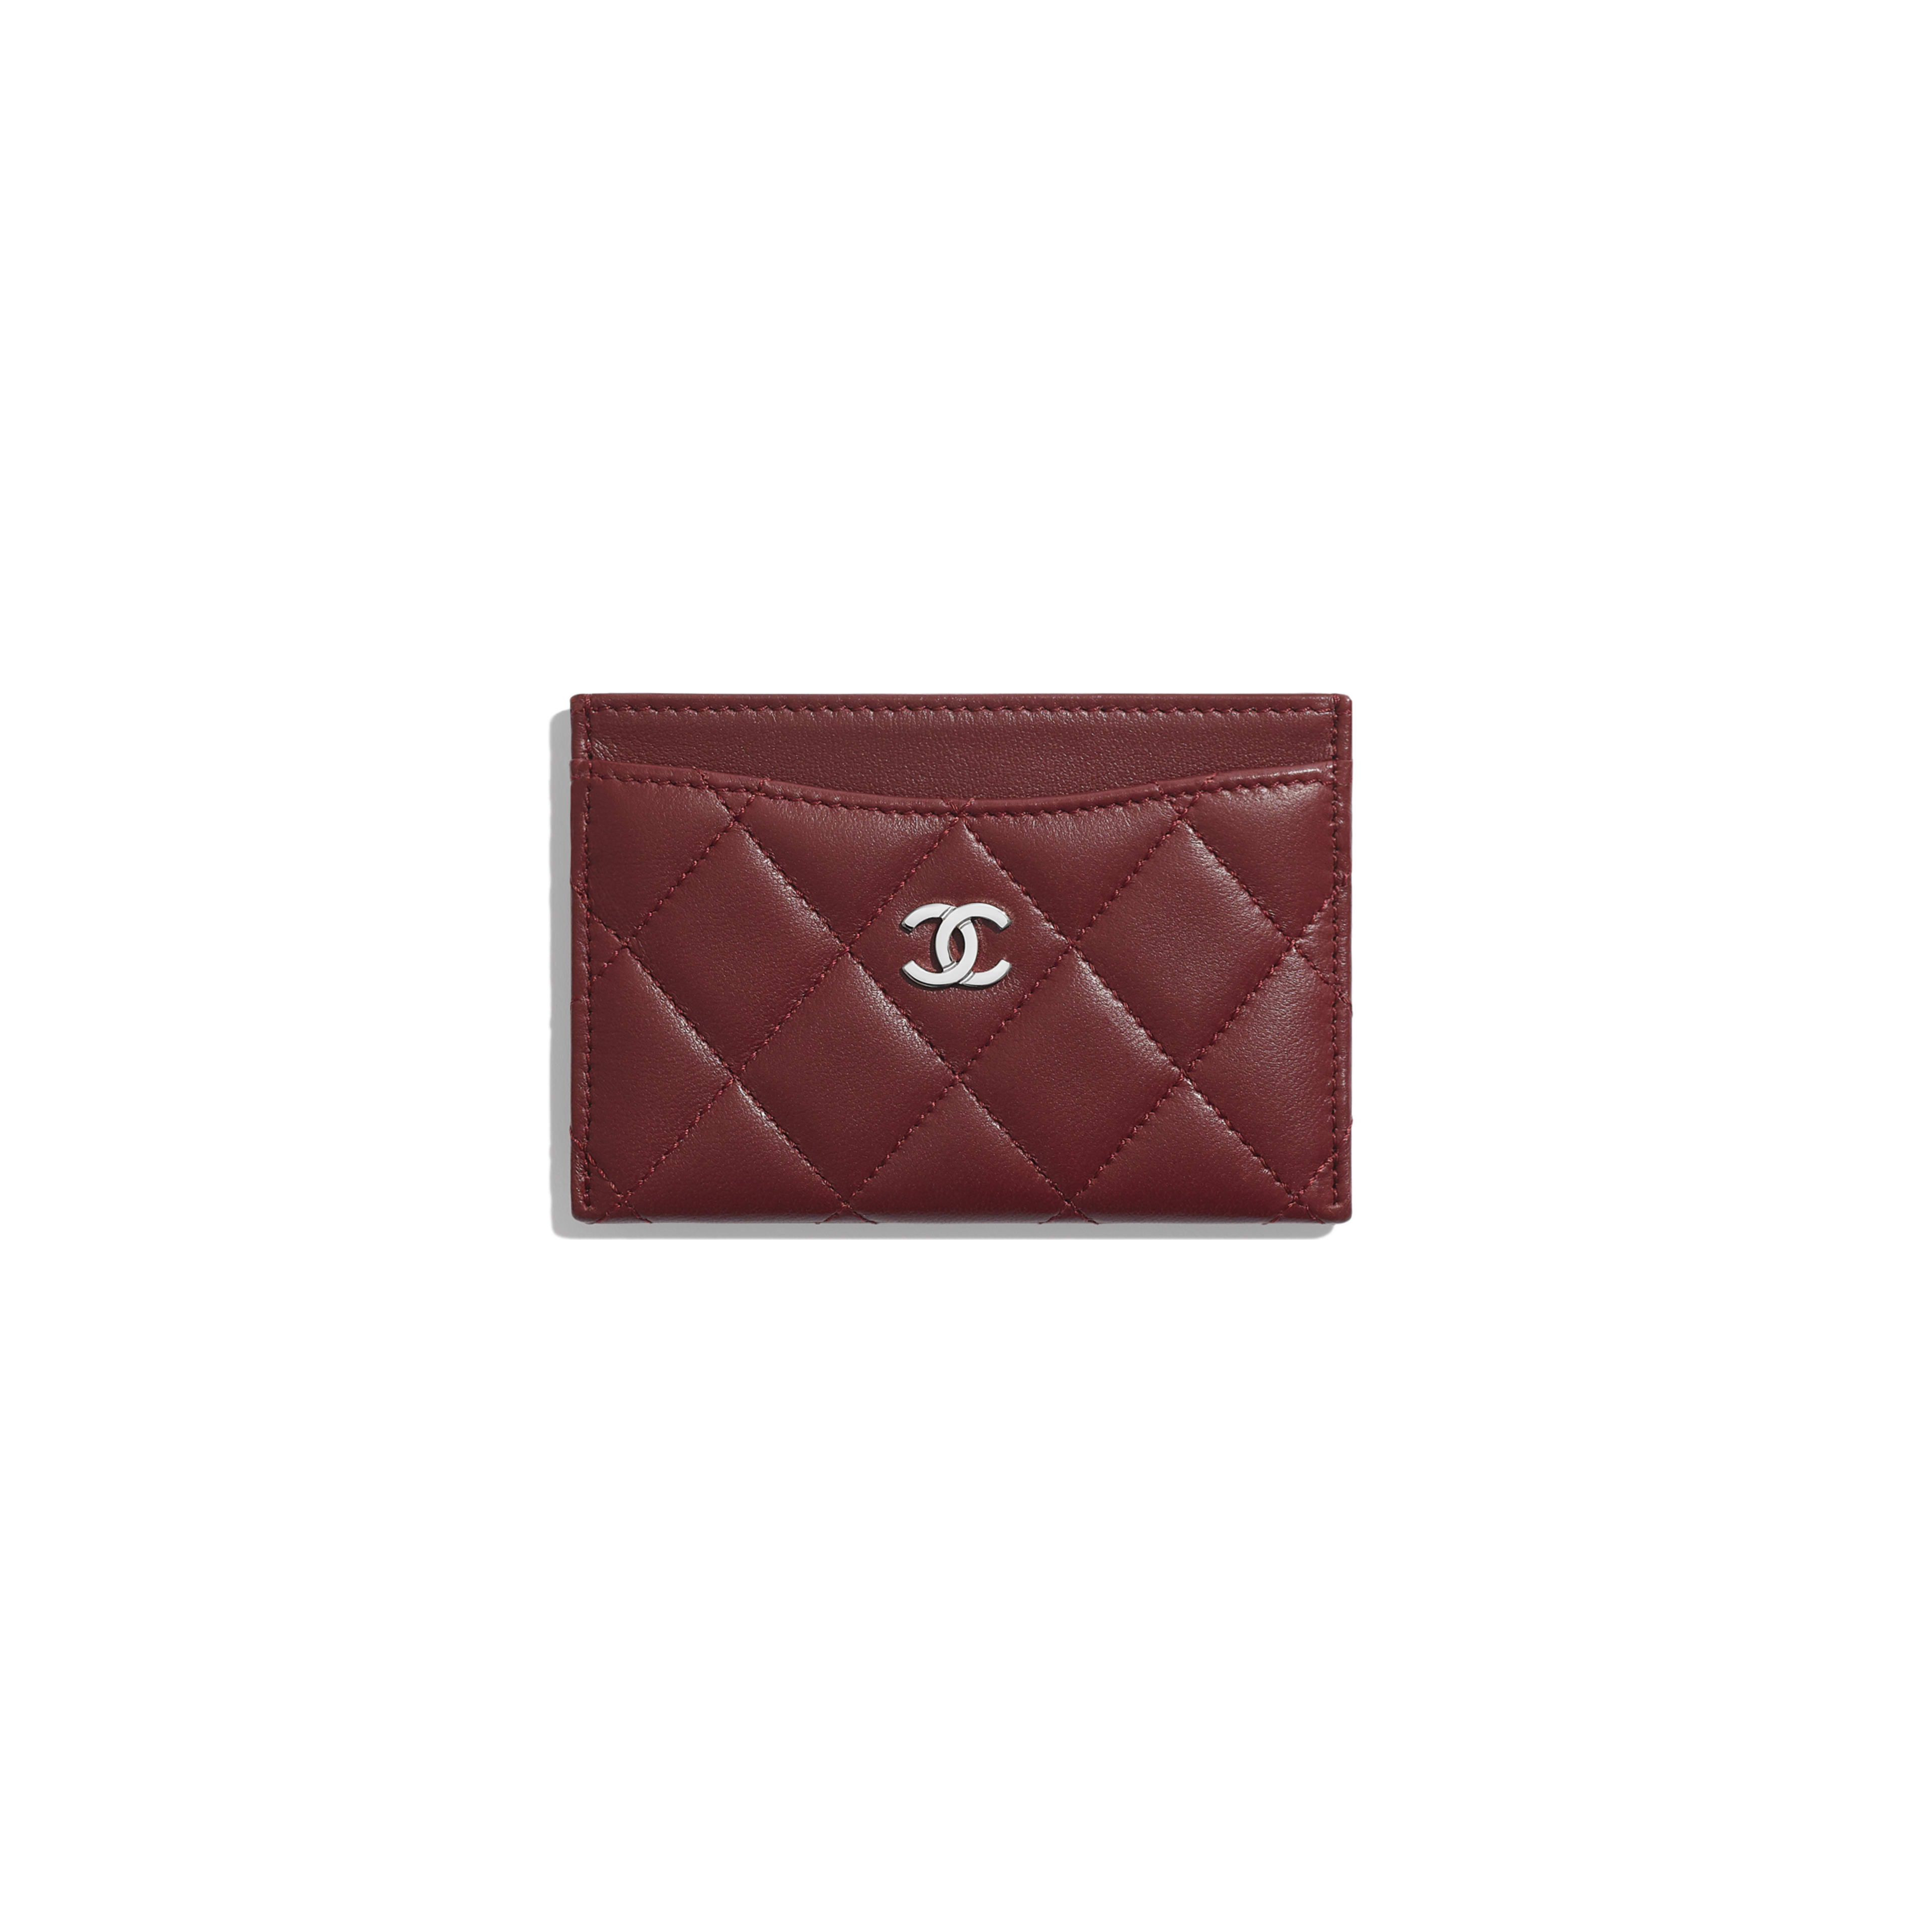 Classic Card Holder - Burgundy - Lambskin - Default view - see full sized version